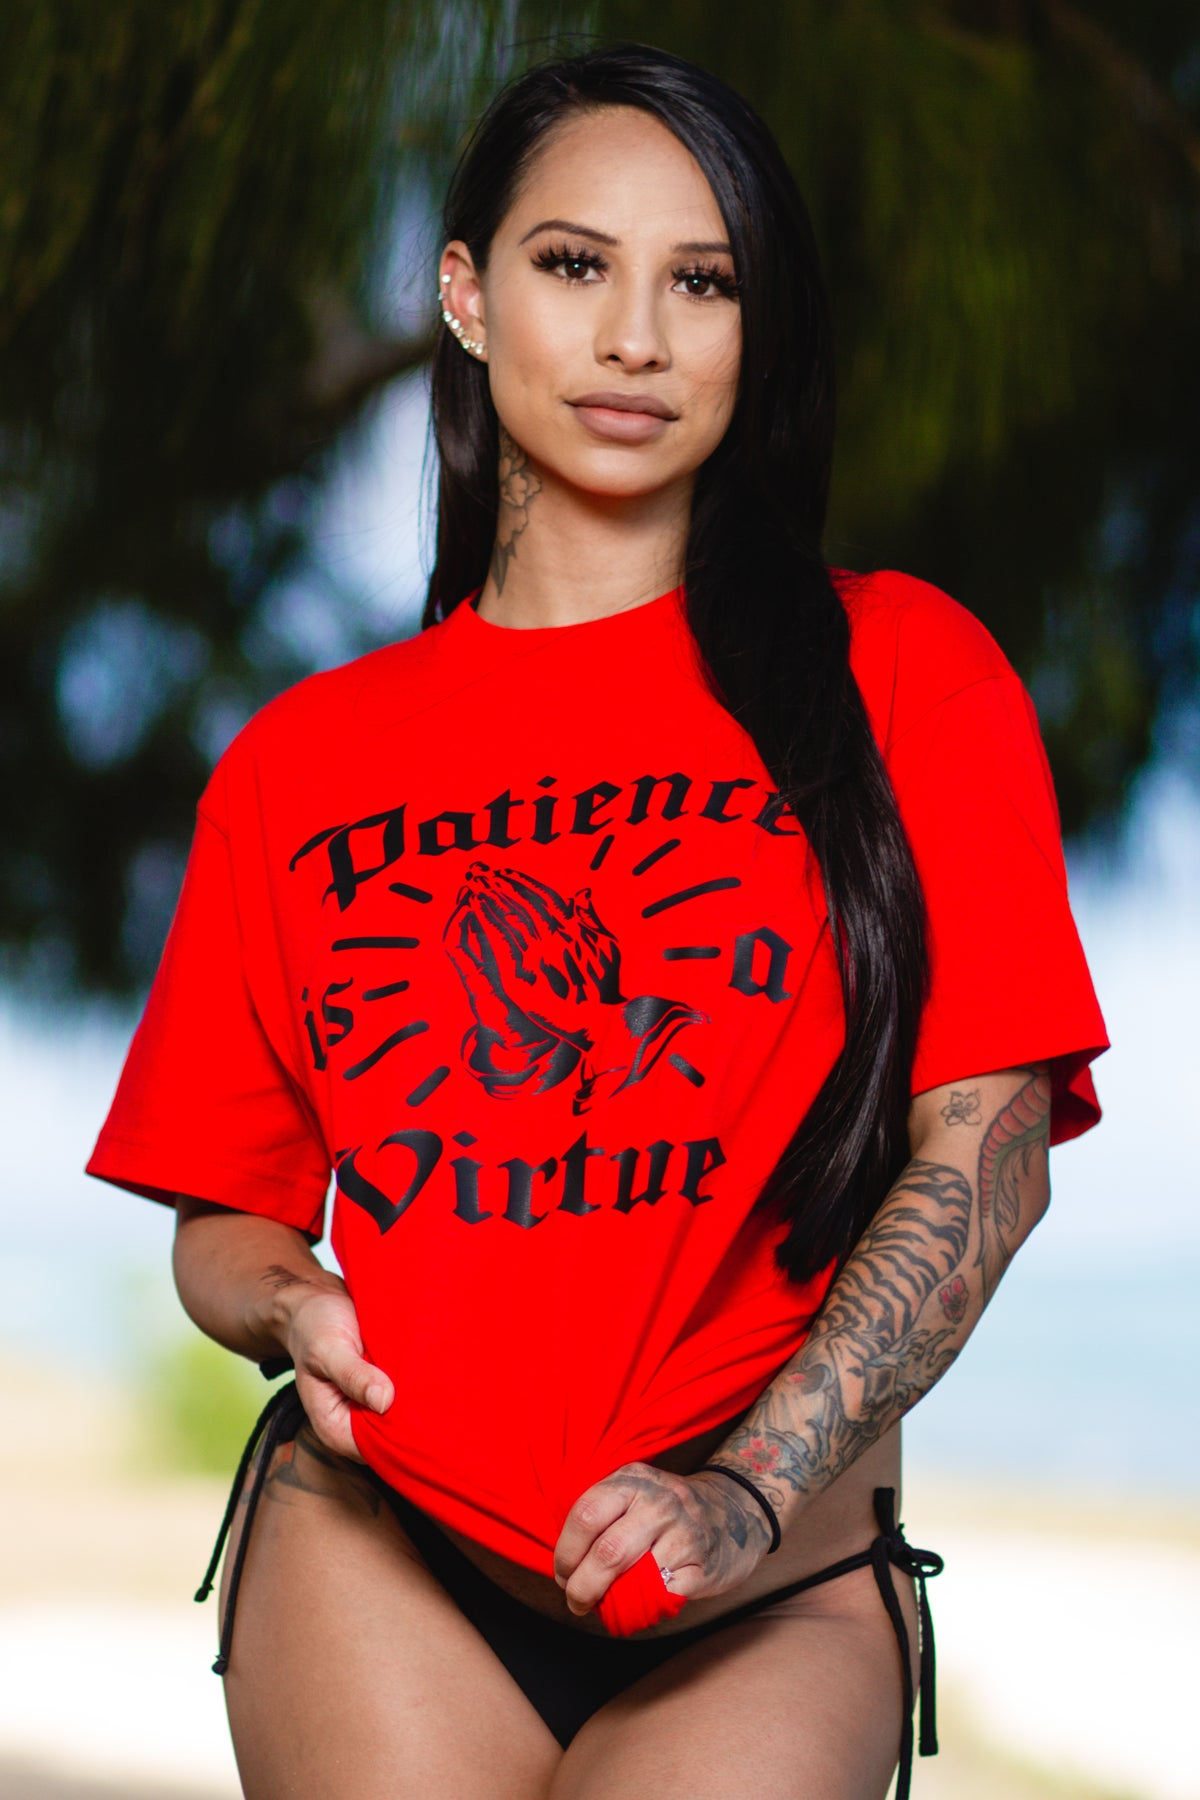 Patience is a Virtue Red Tee